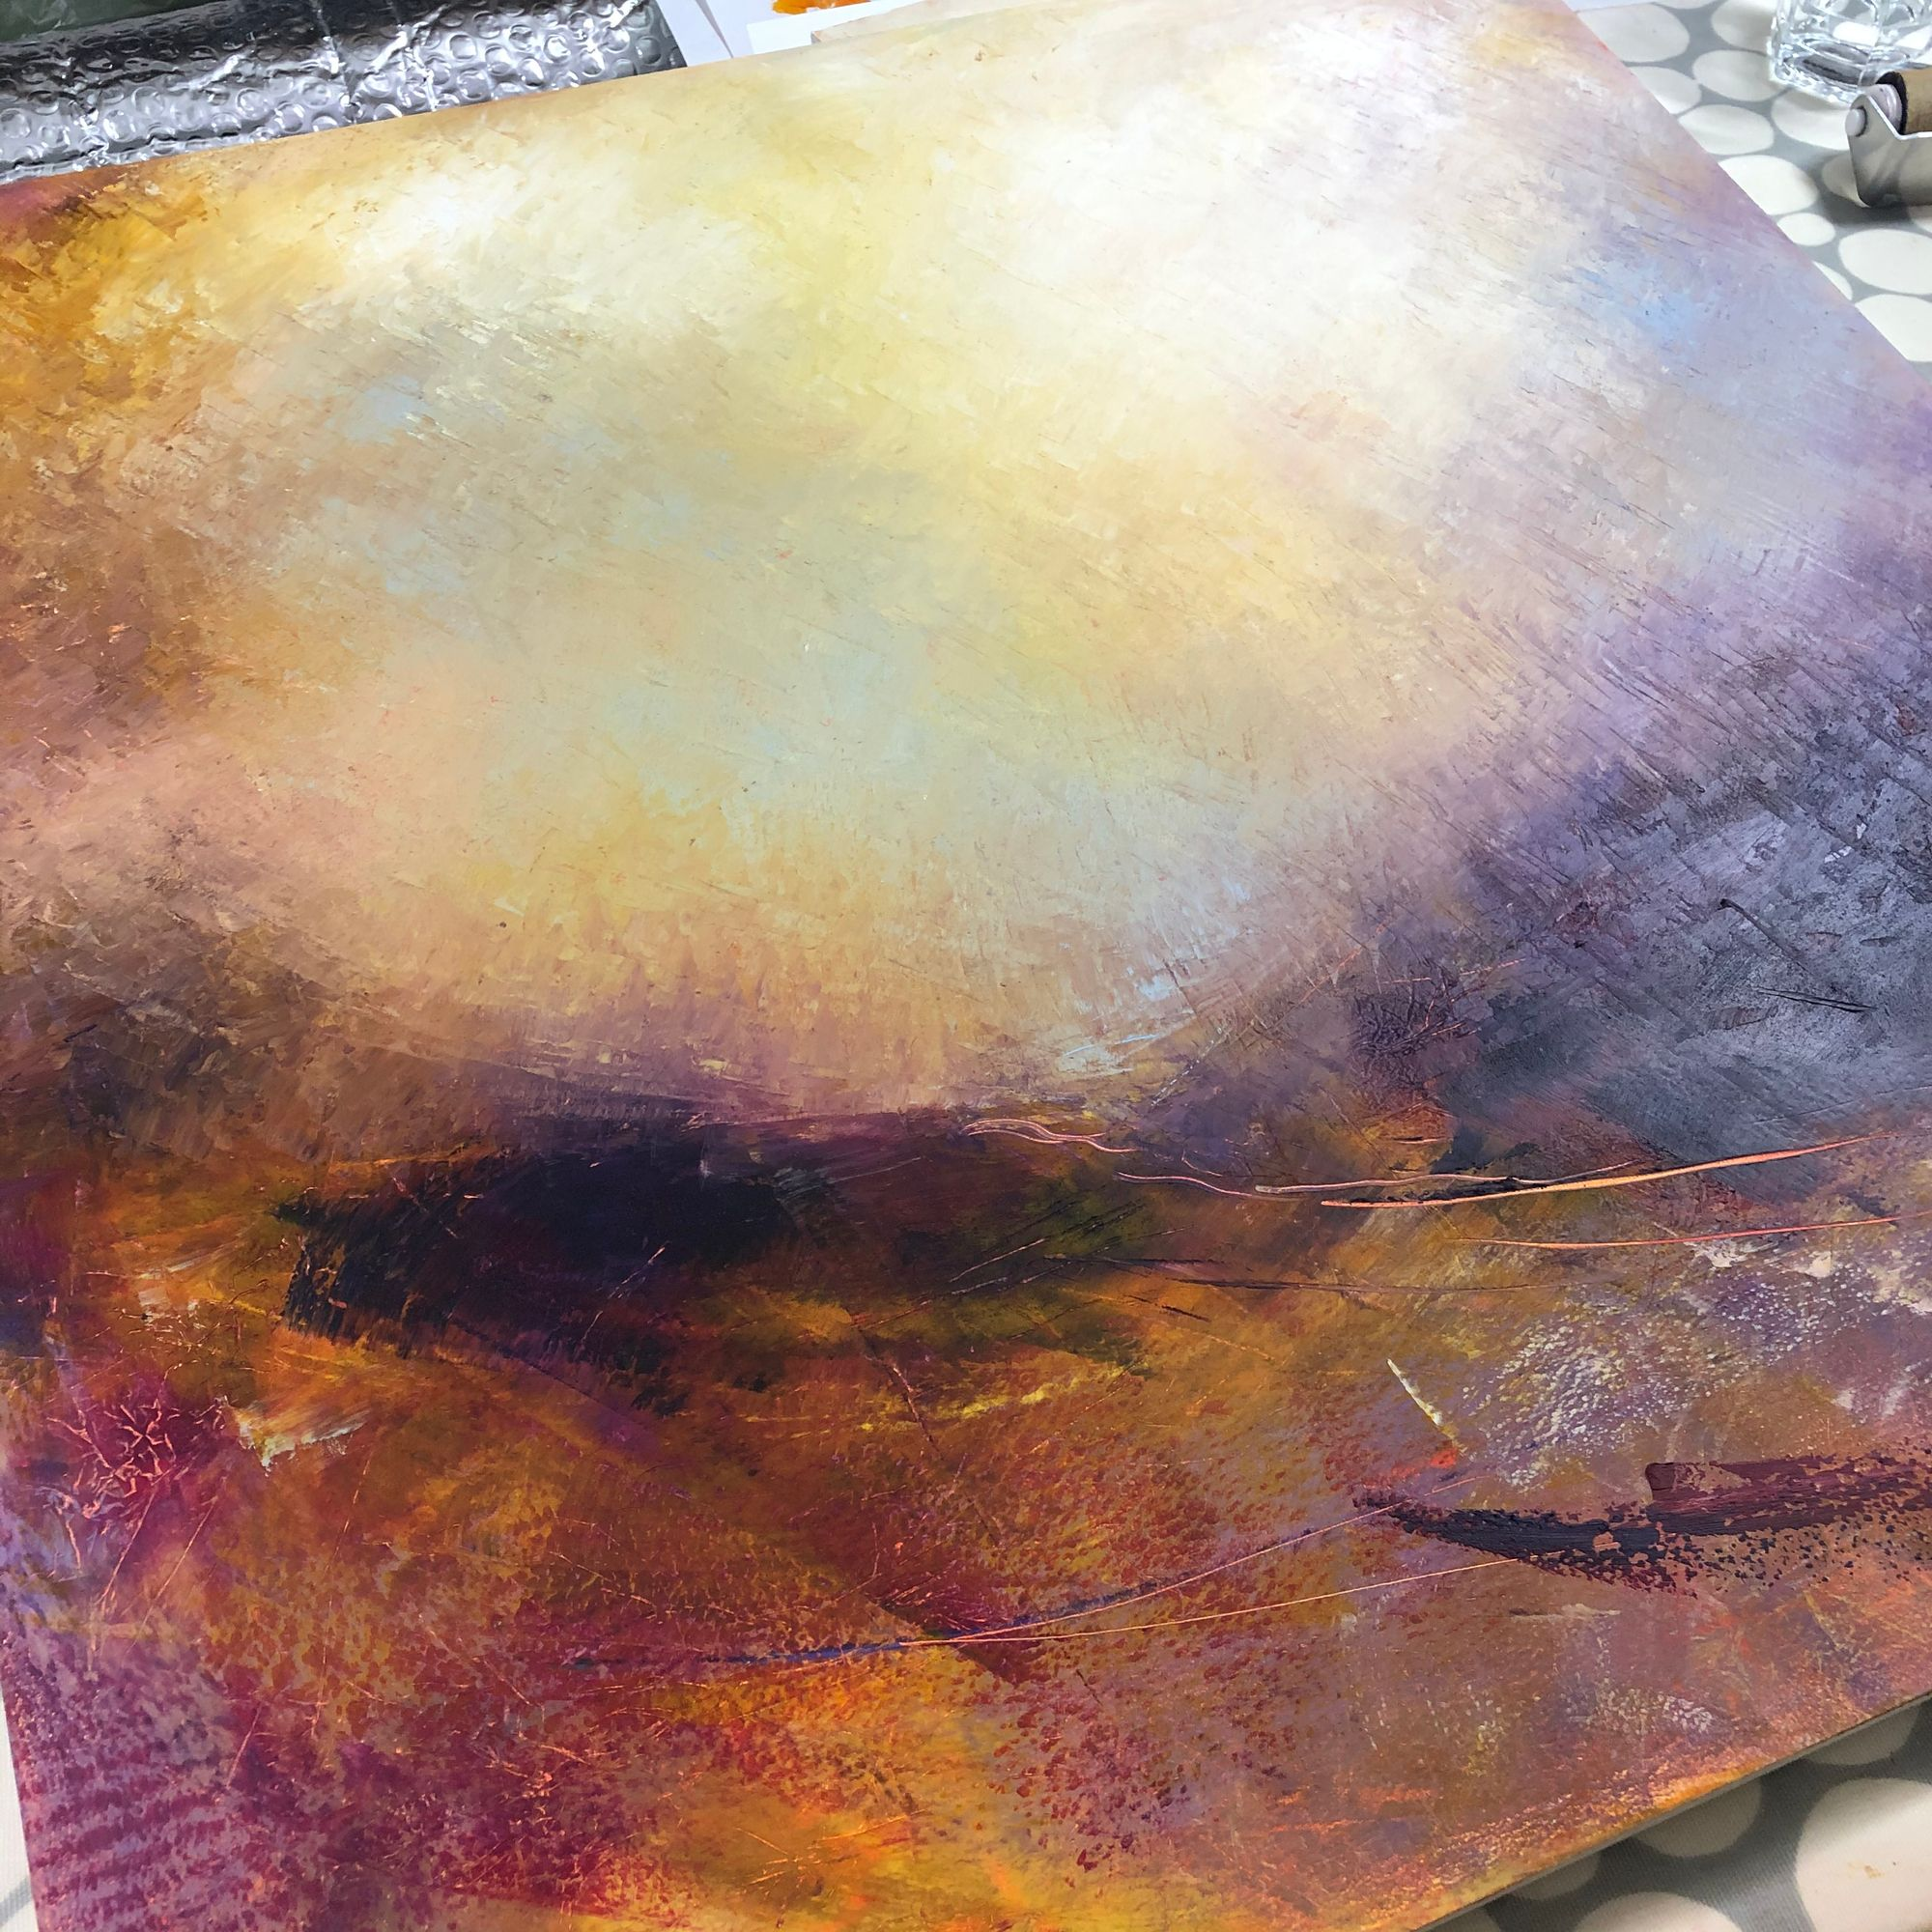 Starting Working On A Wooden Panel This Weekend Lots Of Moody Skies Being Developed Expressivepainting Intuitivepainting Abstractlandsc In 2020 Intuitive Painting